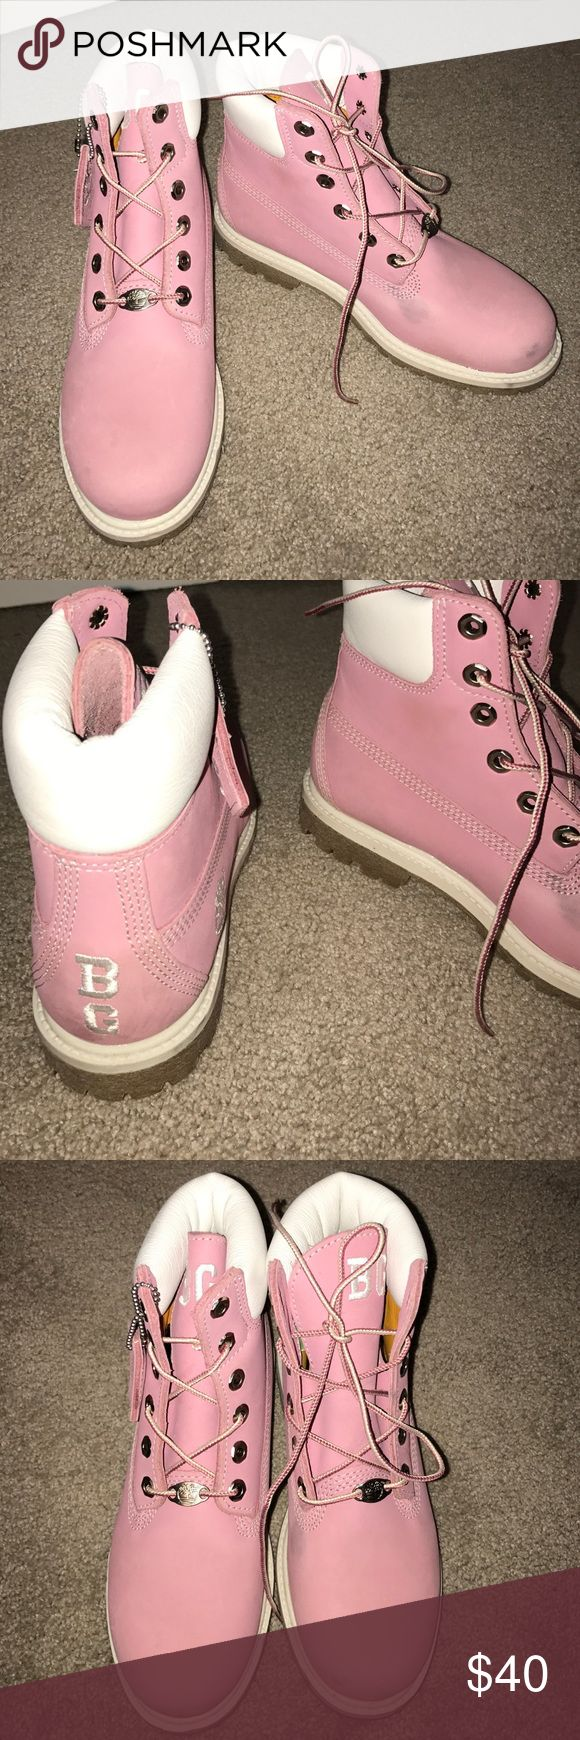 pink timberland boots these are great for the winter up north!  thy are heavy duty timberland boots for girls. they are very fashionable and practical which is what makes them great! Timberland Shoes Winter & Rain Boots